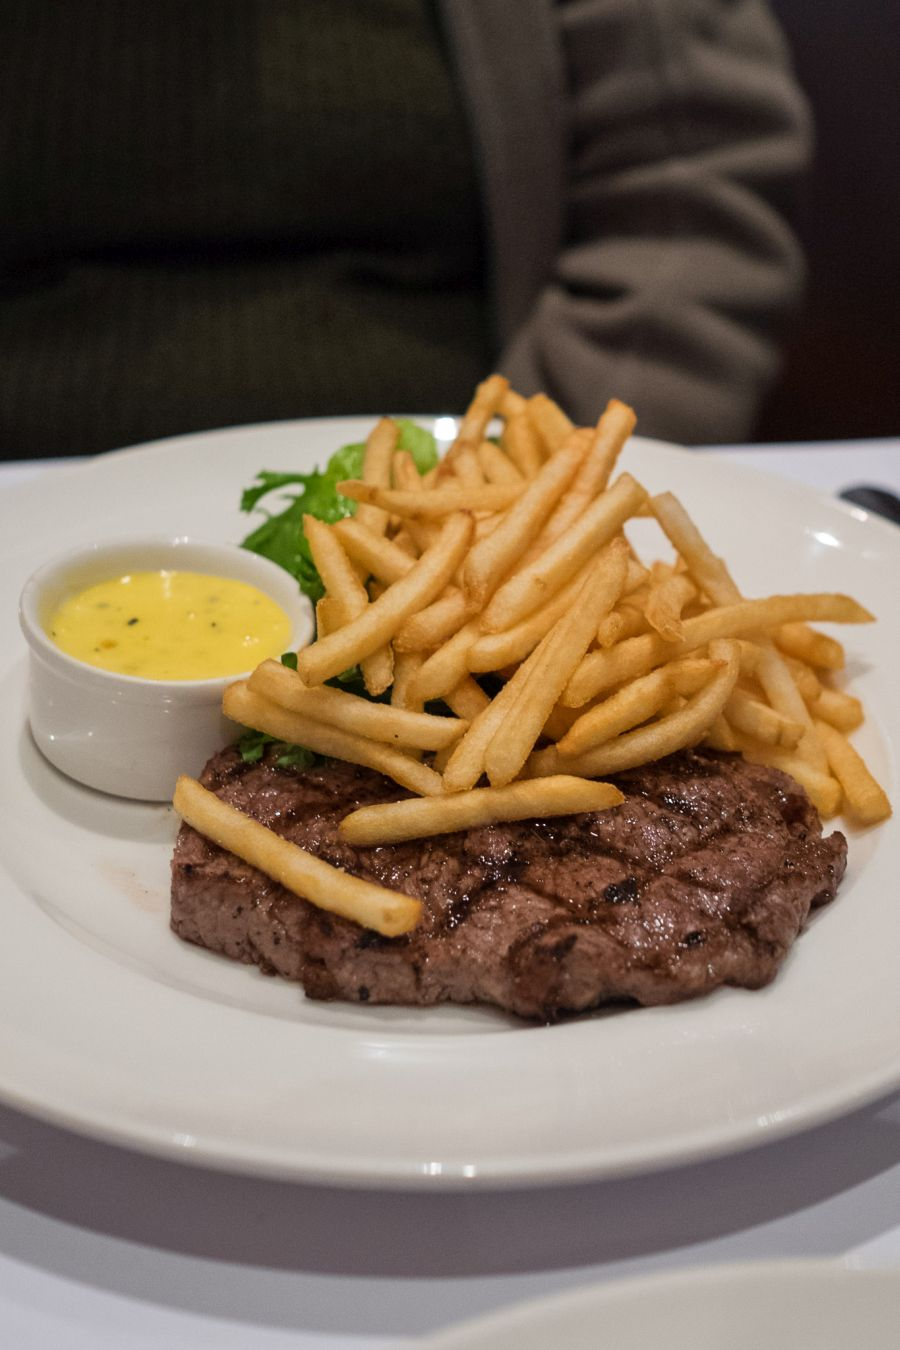 Sirloin steak, frites, salad and bearnaise sauce